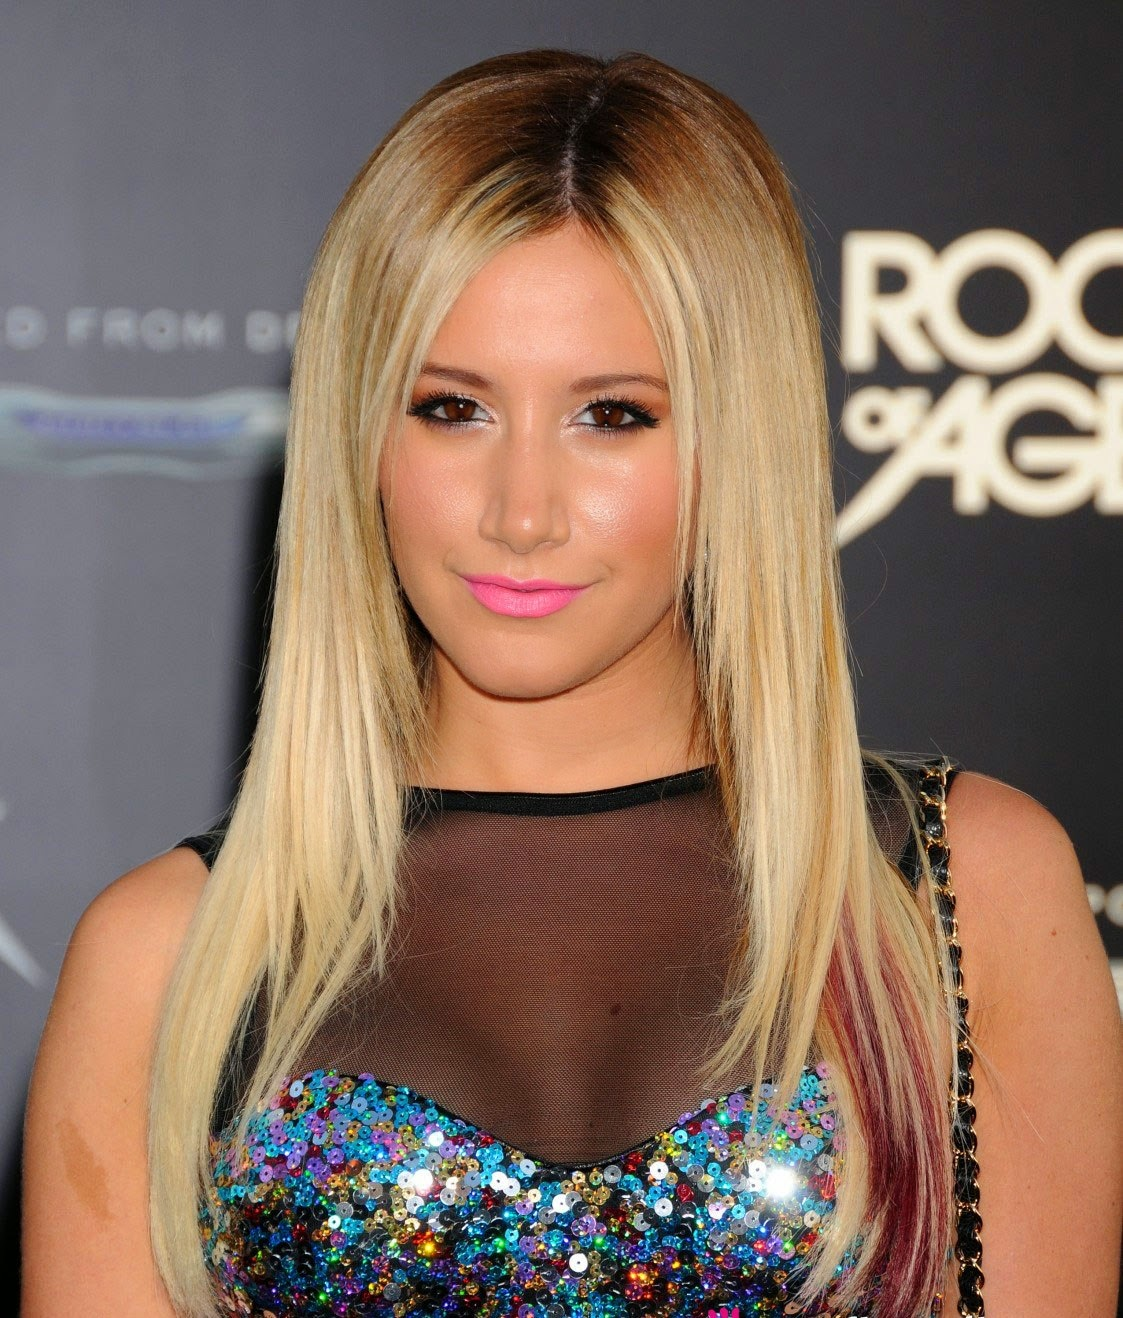 Popsinger Ashley Tisdale hot Images